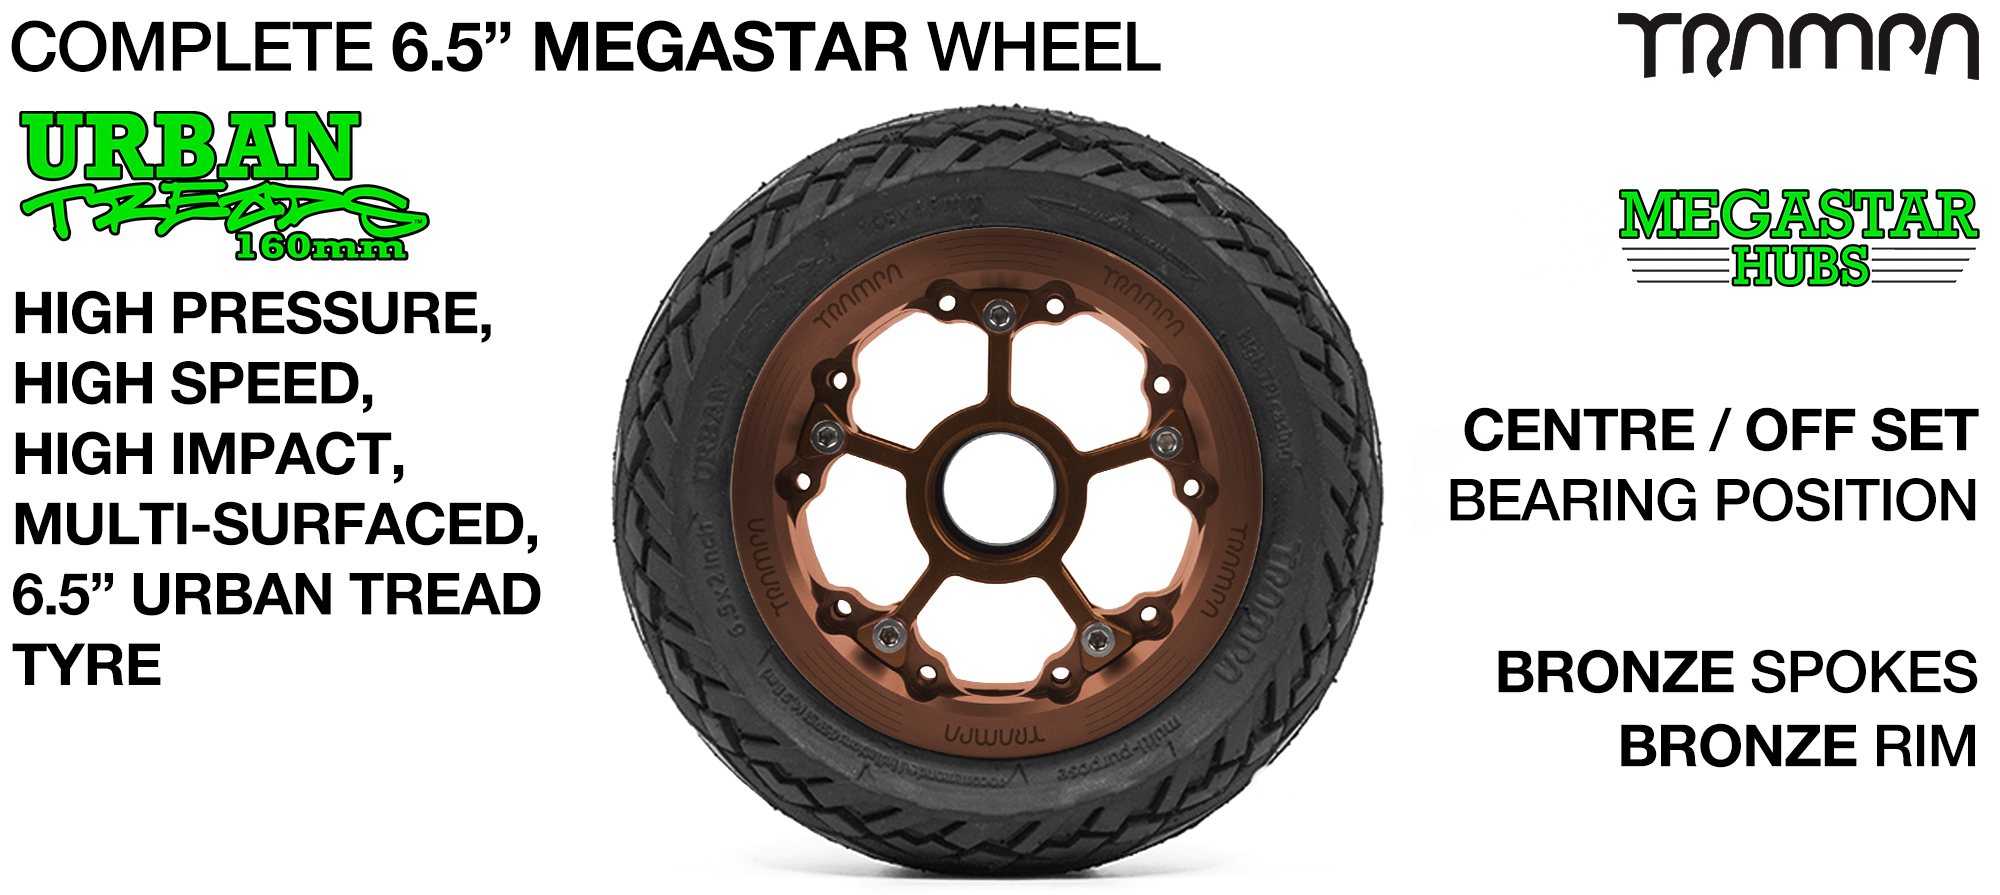 BRONZE MEGASTAR Rims with BRONZE Spokes & 6.5 Inch URBAN Treads Tyres